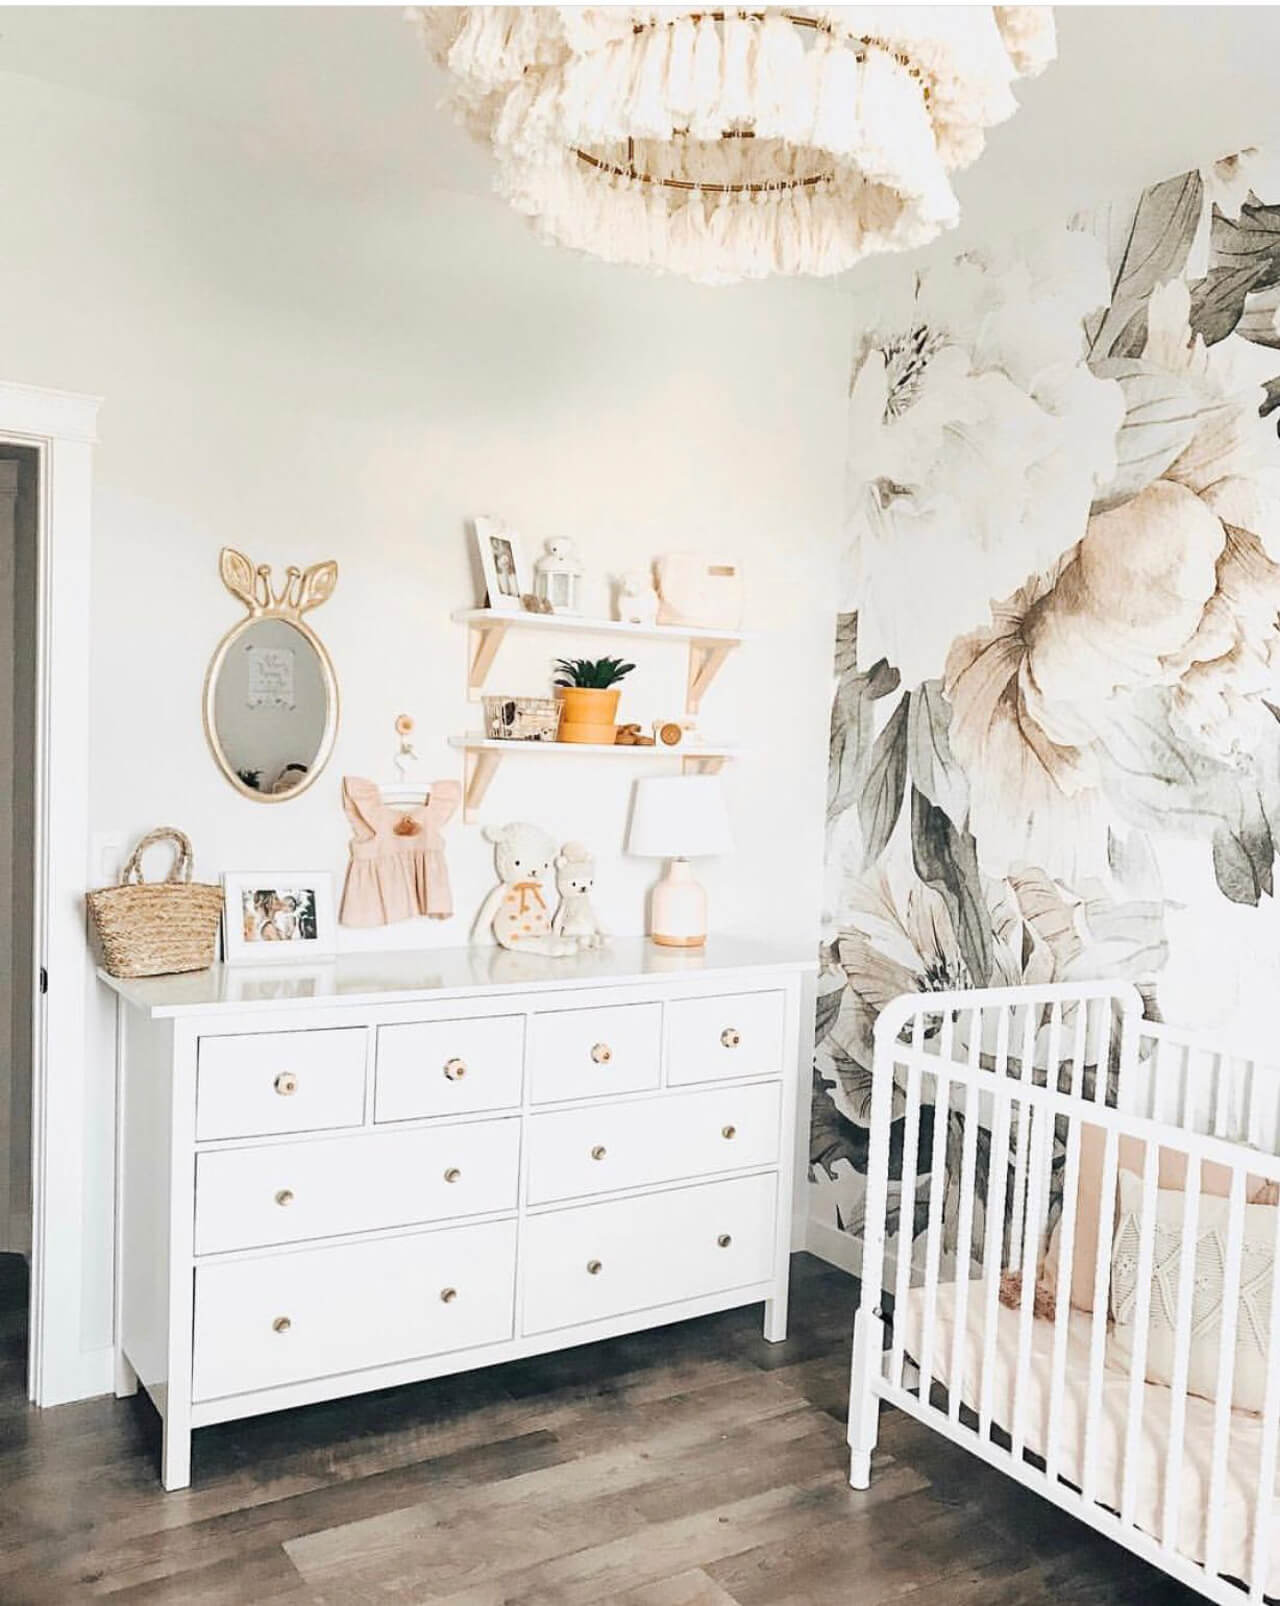 Baby Room Accessories: Our Baby Girl Nursery Decor Inspiration